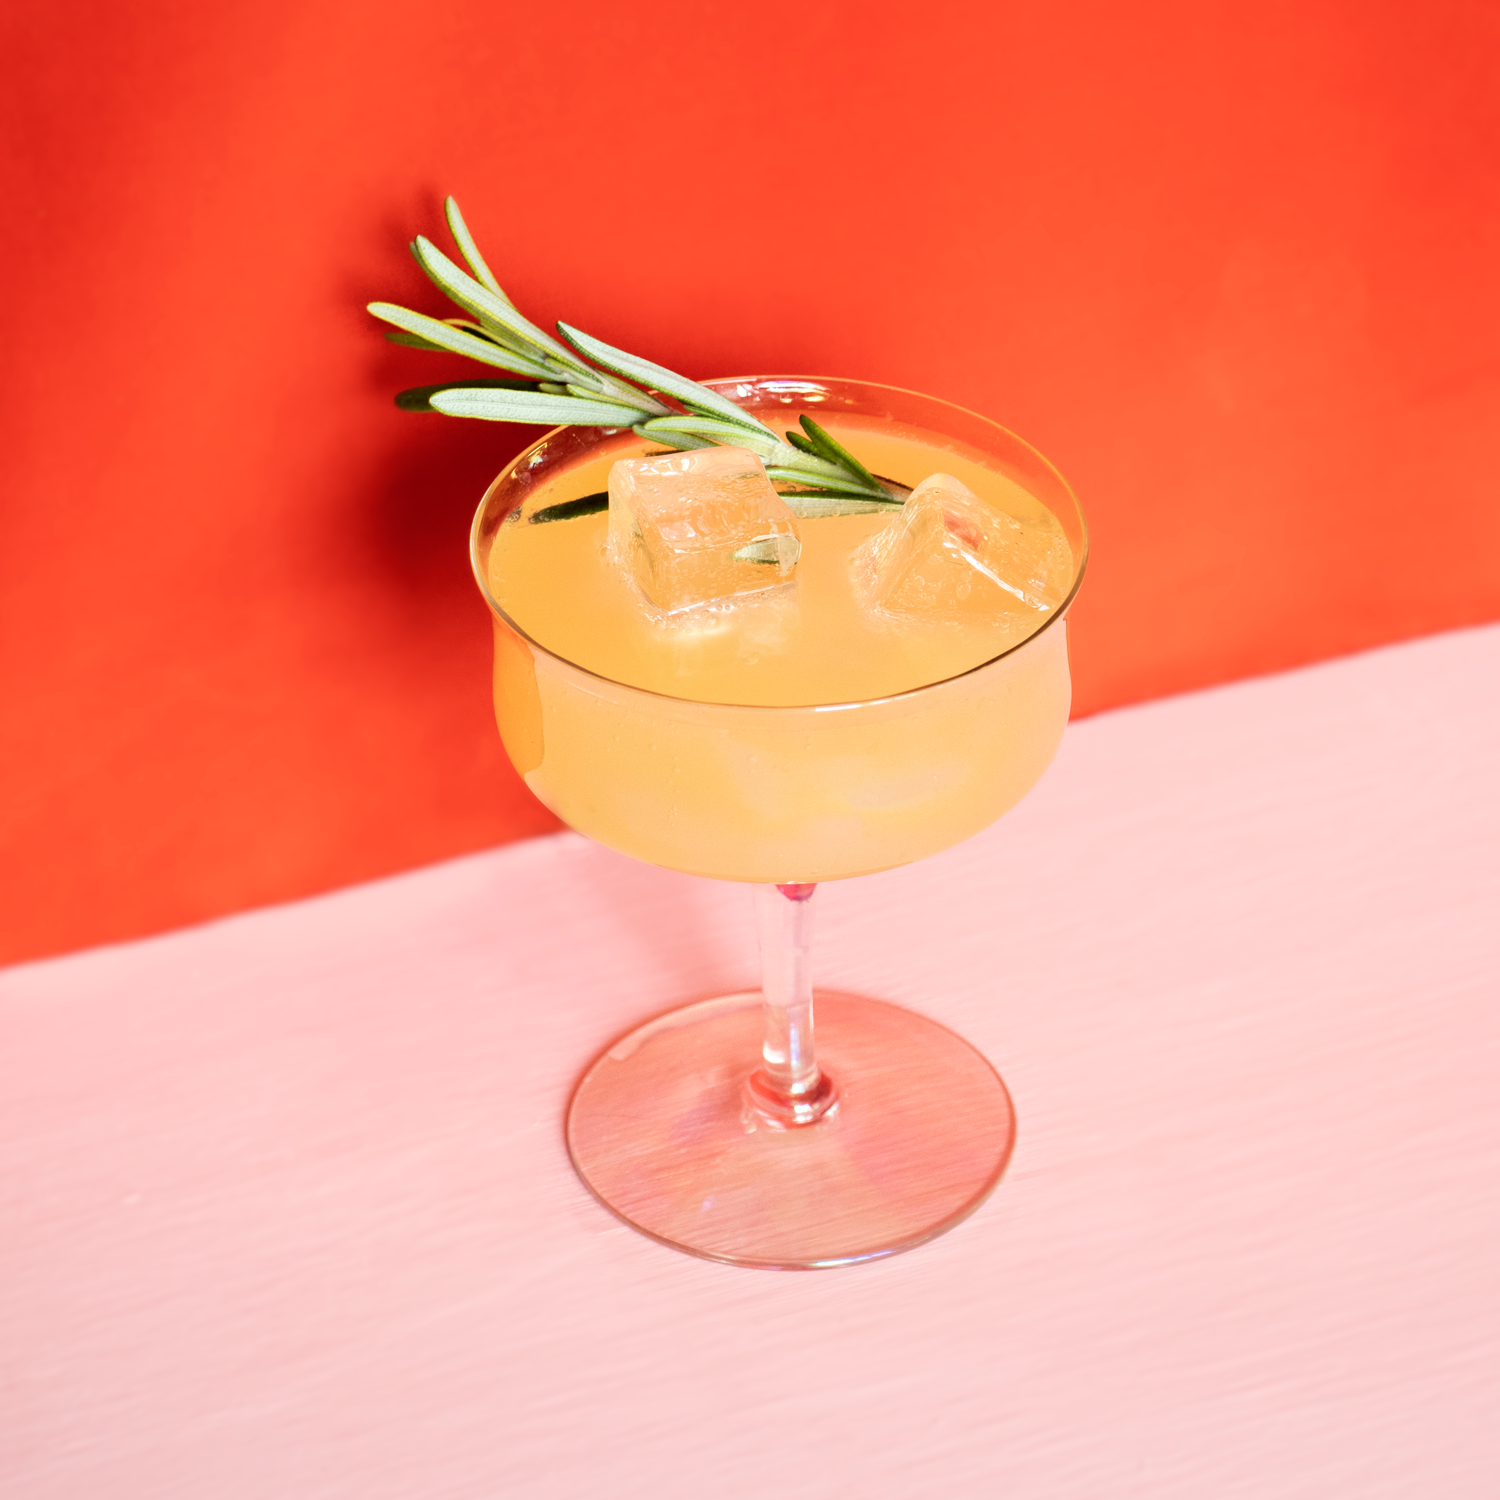 SIGNATURE COCKTAILS - Looking to add something really special? We can work with you to design a unique, signature cocktail for your event. Want to add glassware to your package? Check out our add-ons page.